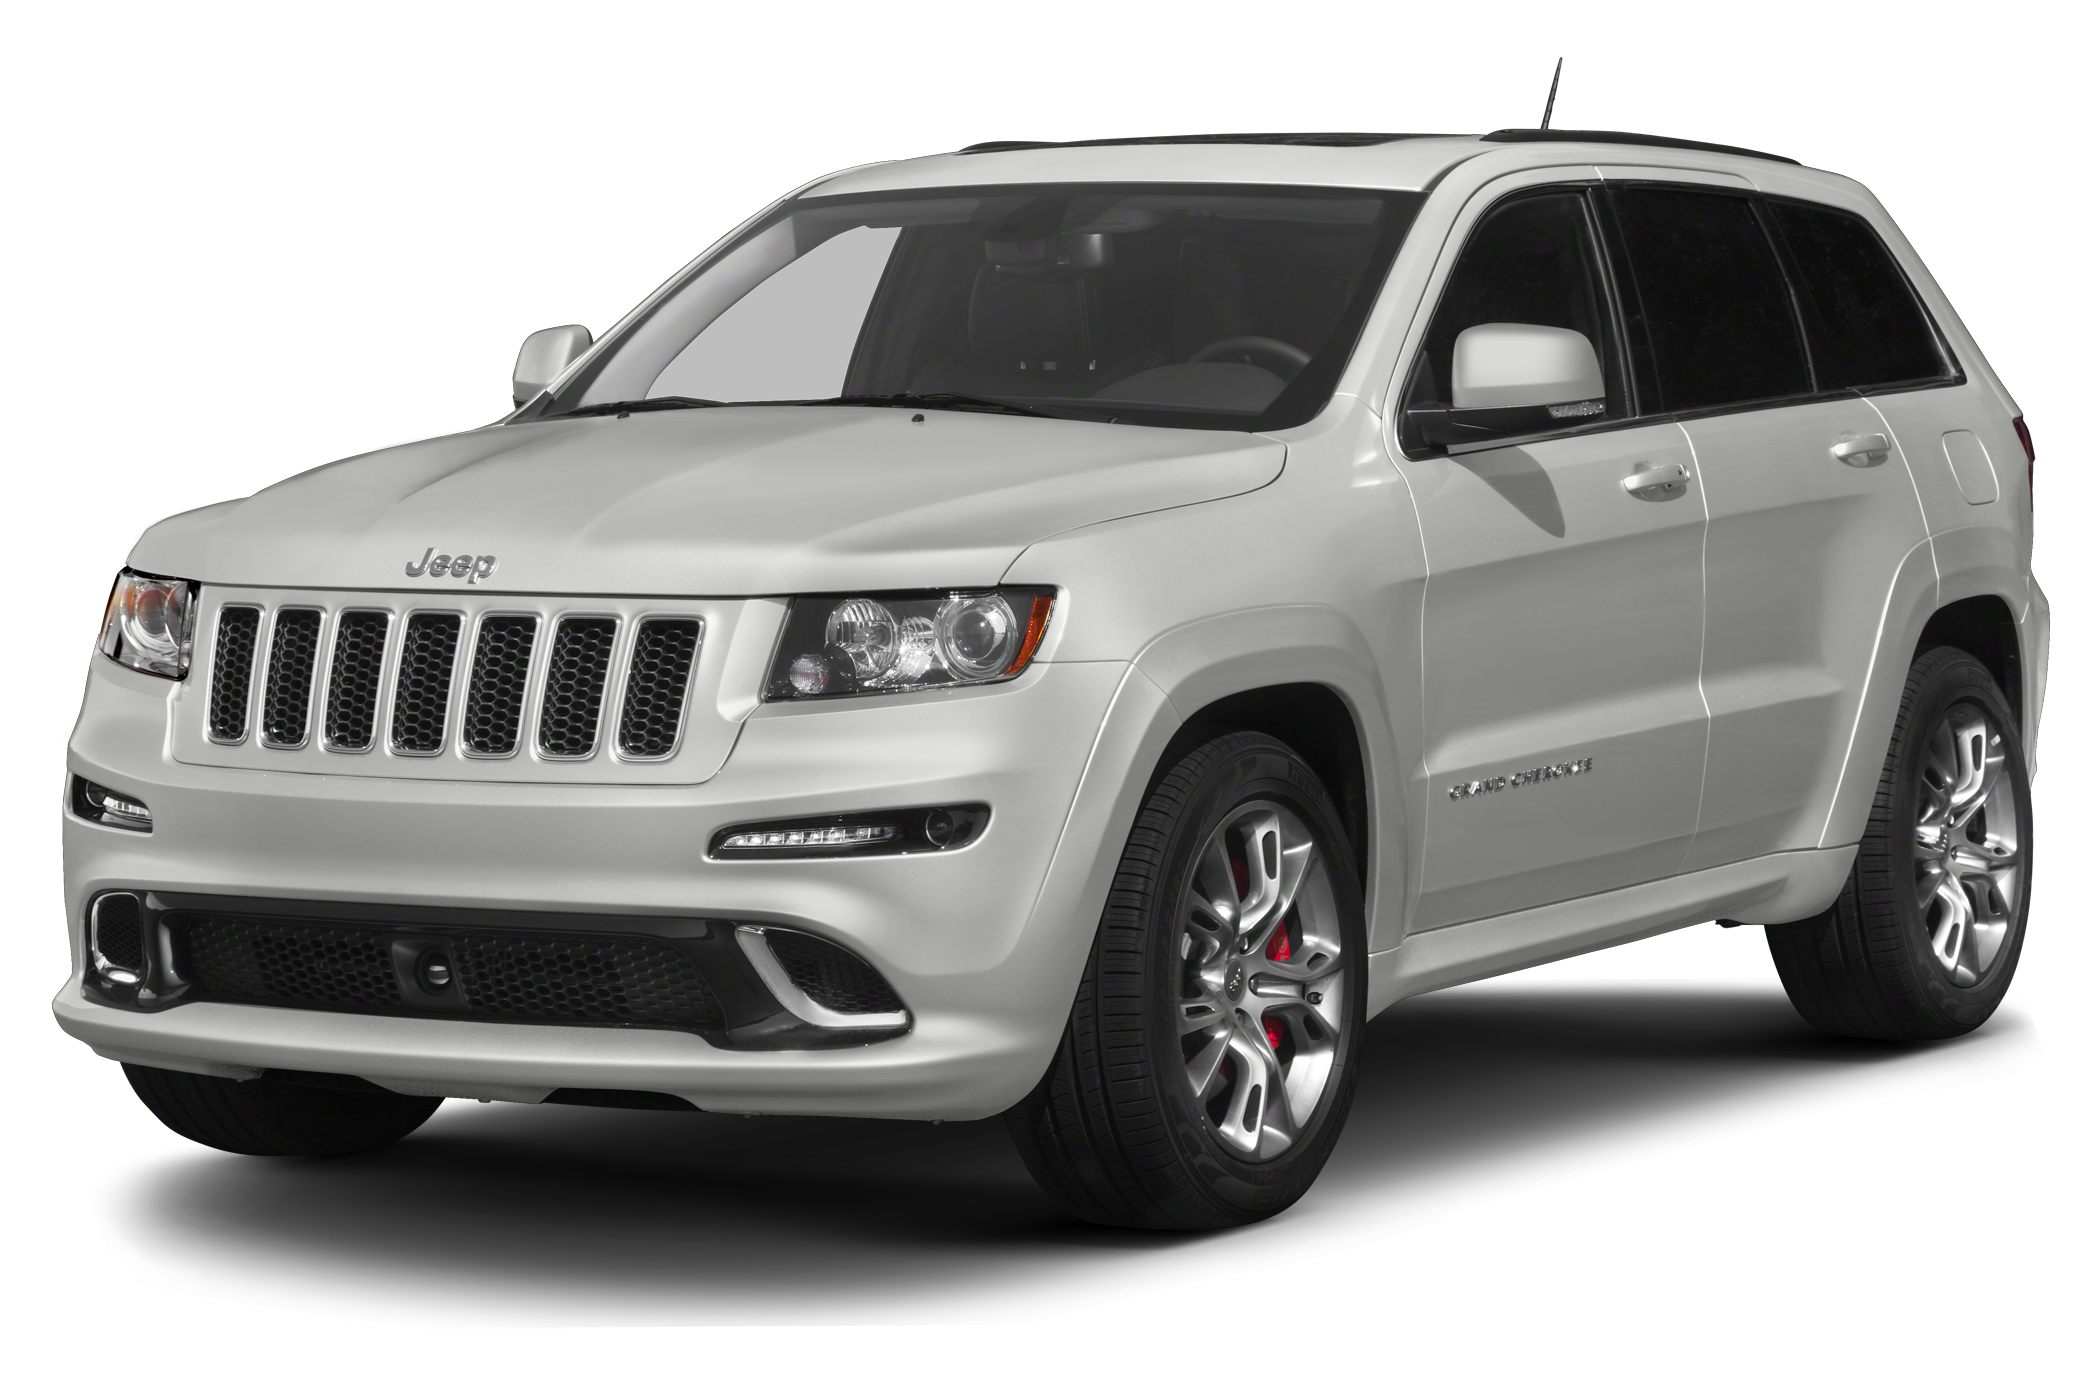 2012 Jeep Grand Cherokee SRT8 4dr 4x4 Pricing and Options